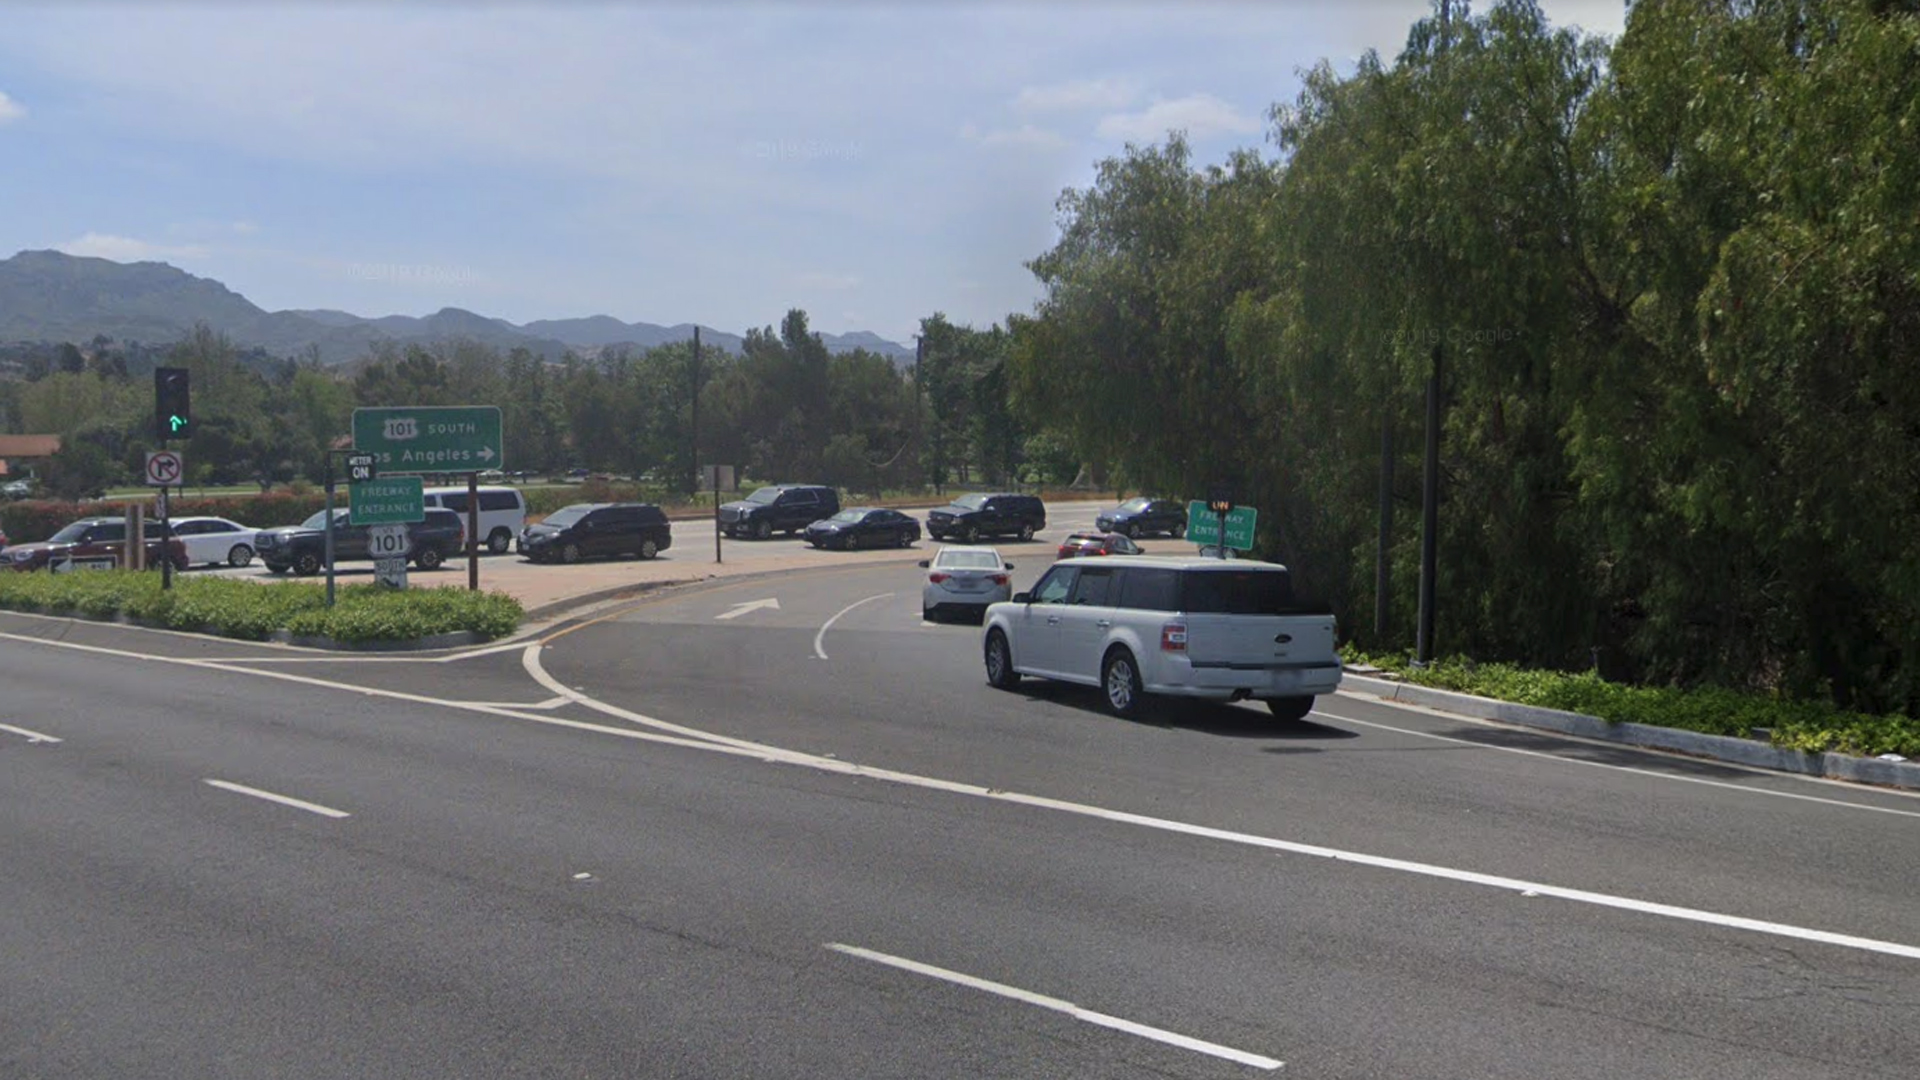 The Lindero Canyon Road onramp to the southbound 101 Freeway in Westlake Village, as viewed in a Google Street View image.